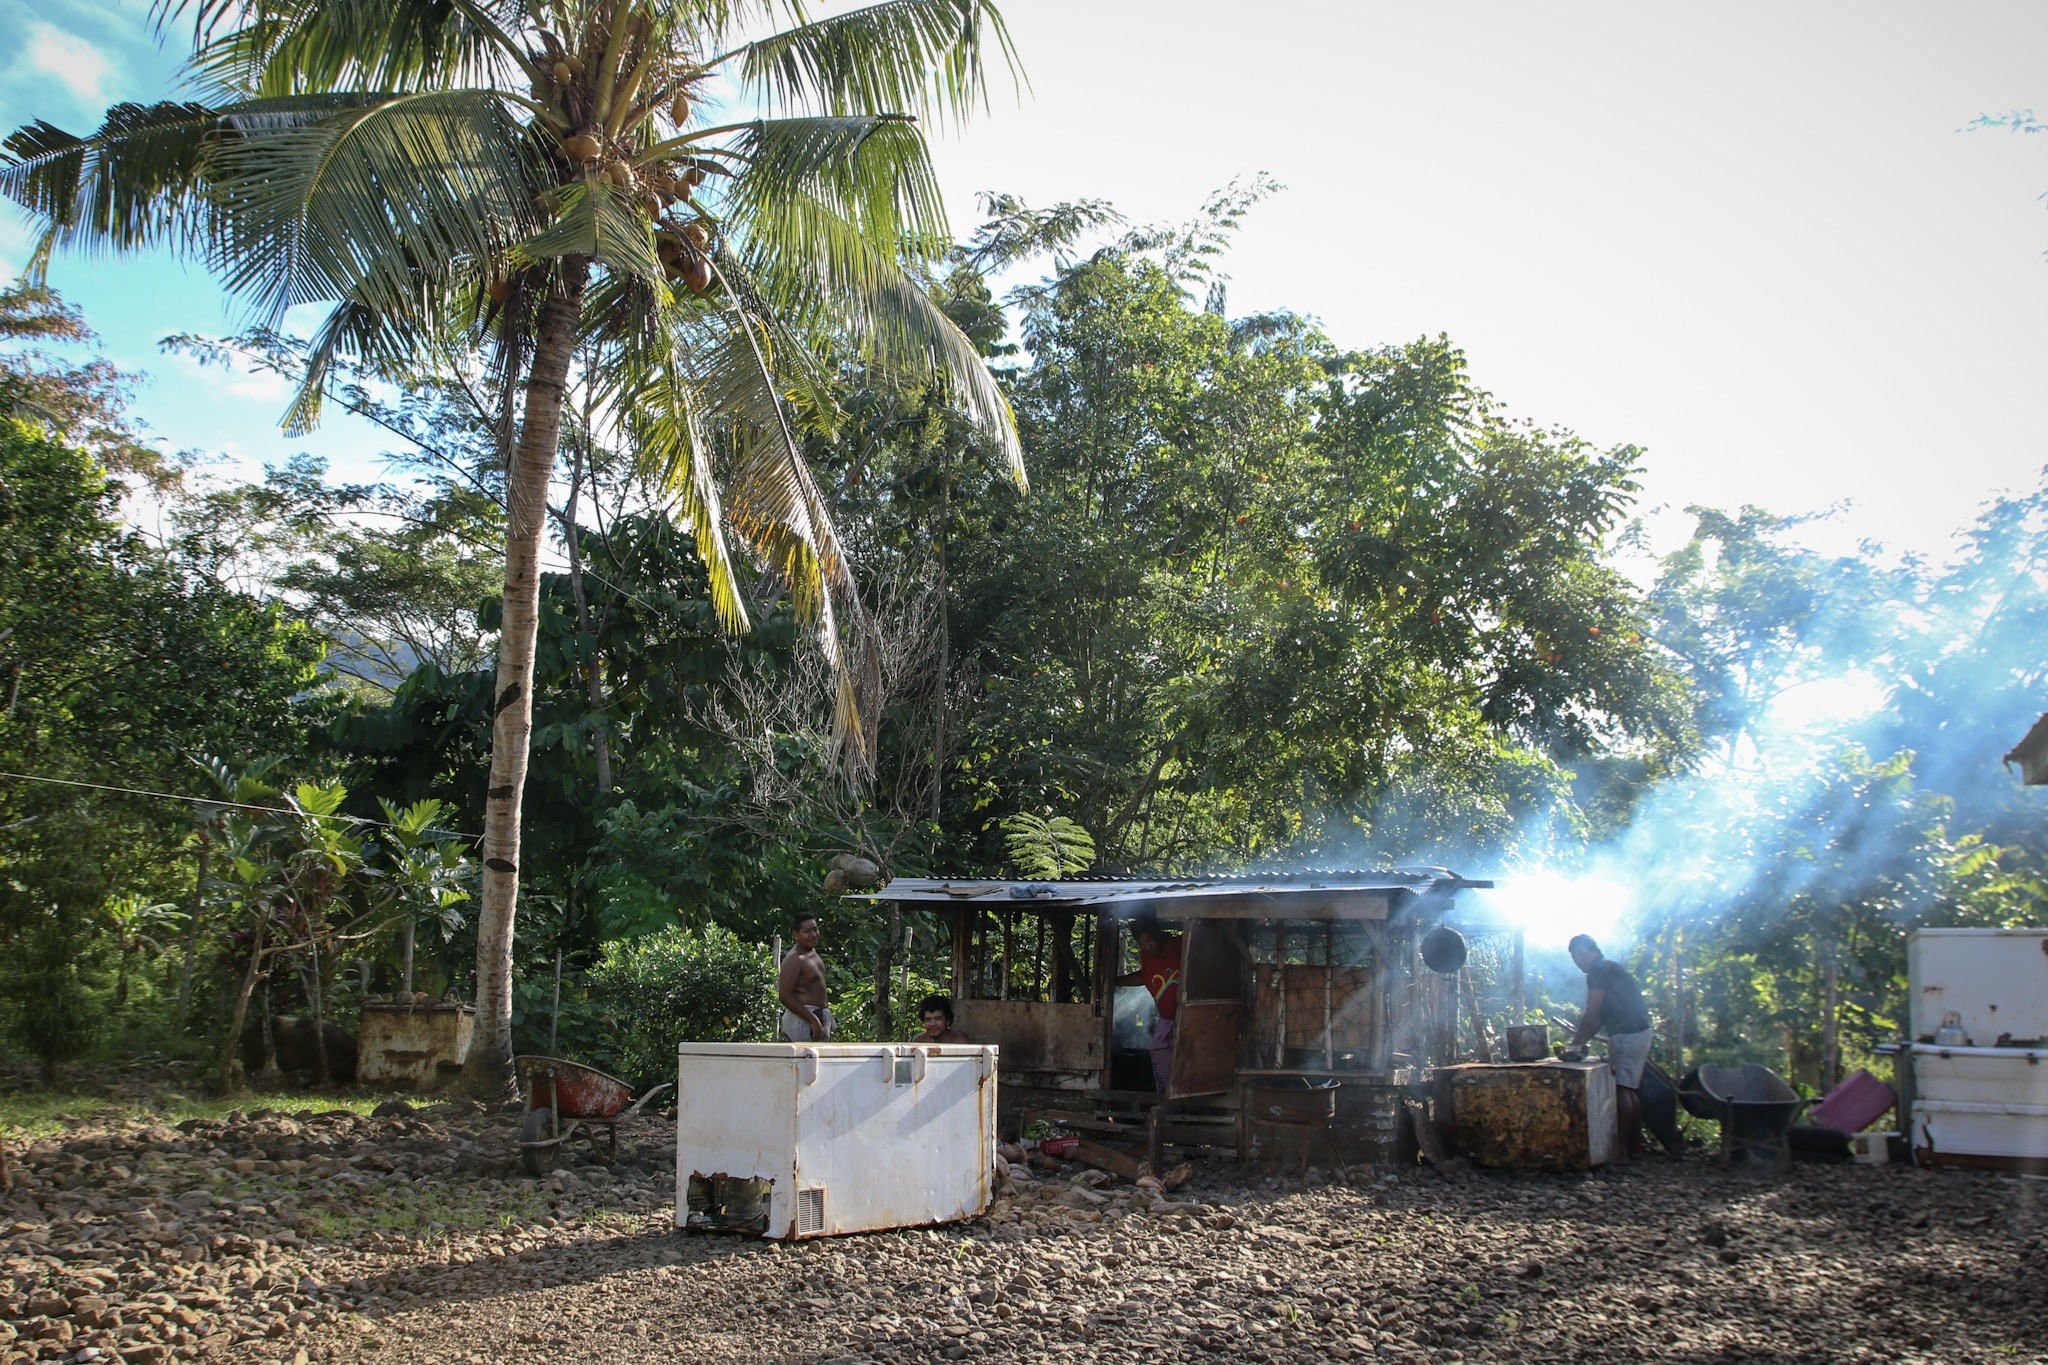 Kitchen fires cooking outside in Samoa.